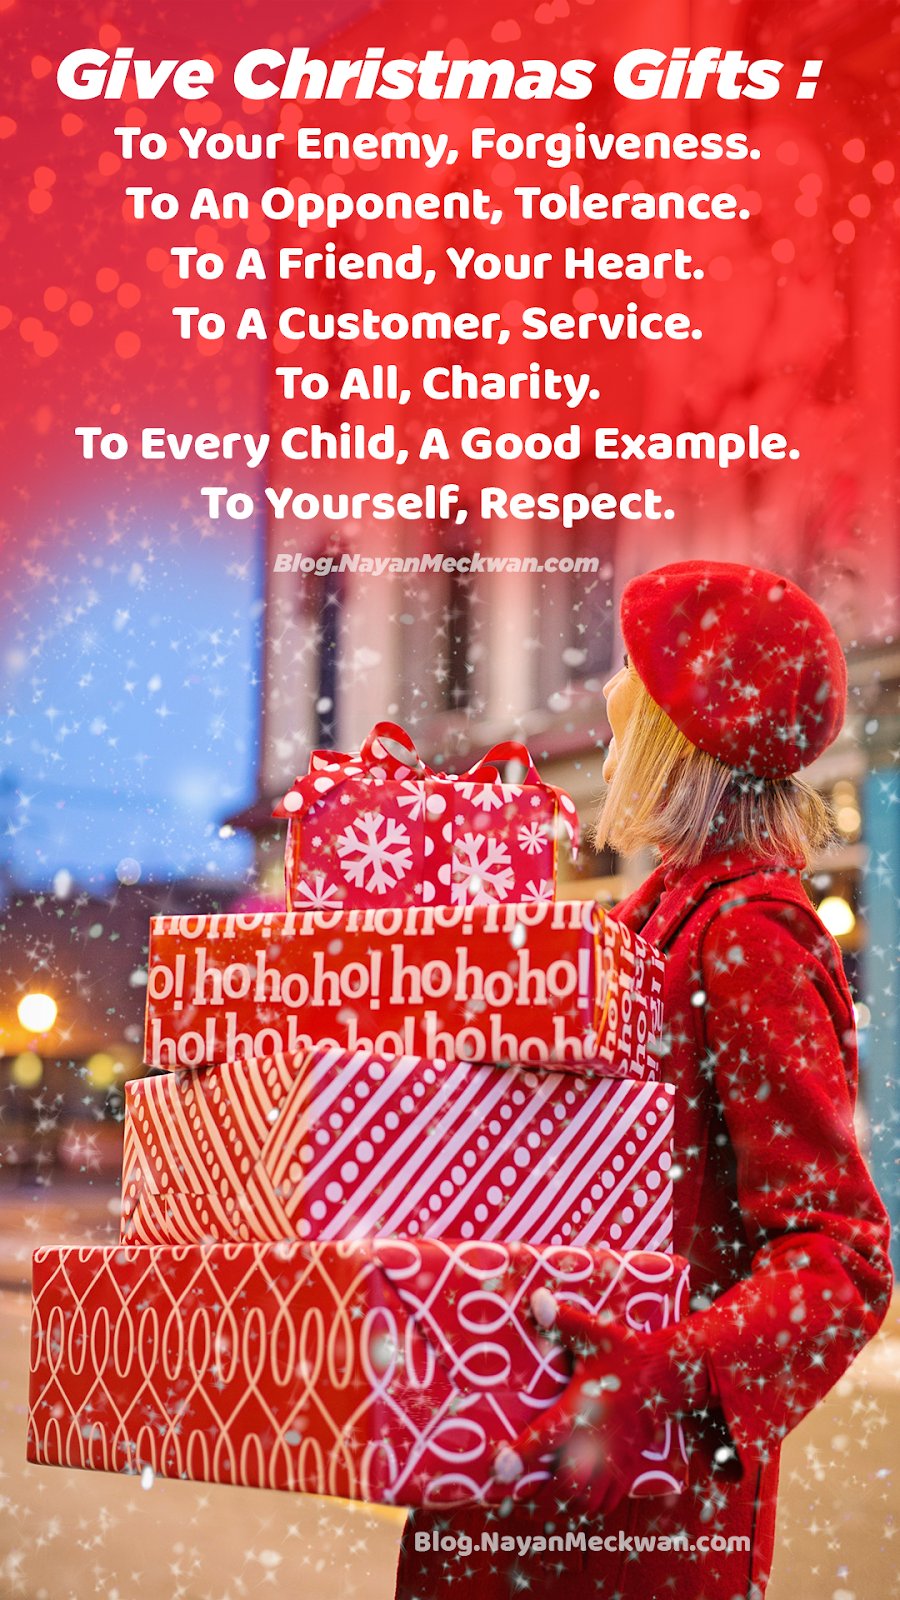 Heartwarming Christmas Gift Messages for family and friends images and Wallpapers